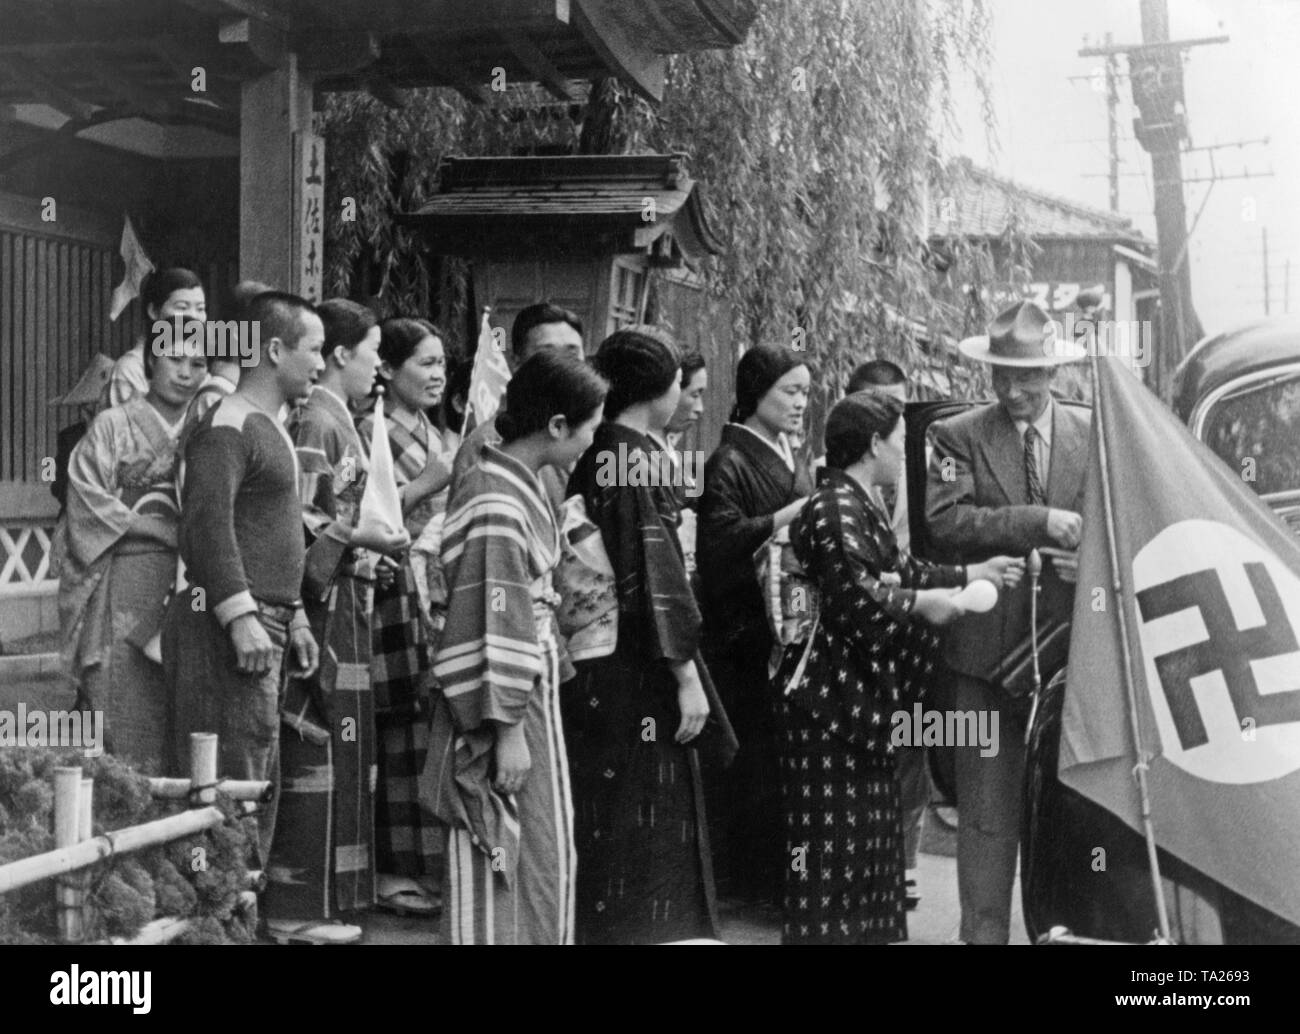 1930s Image Stock Photos & 1930s Image Stock Images - Alamy